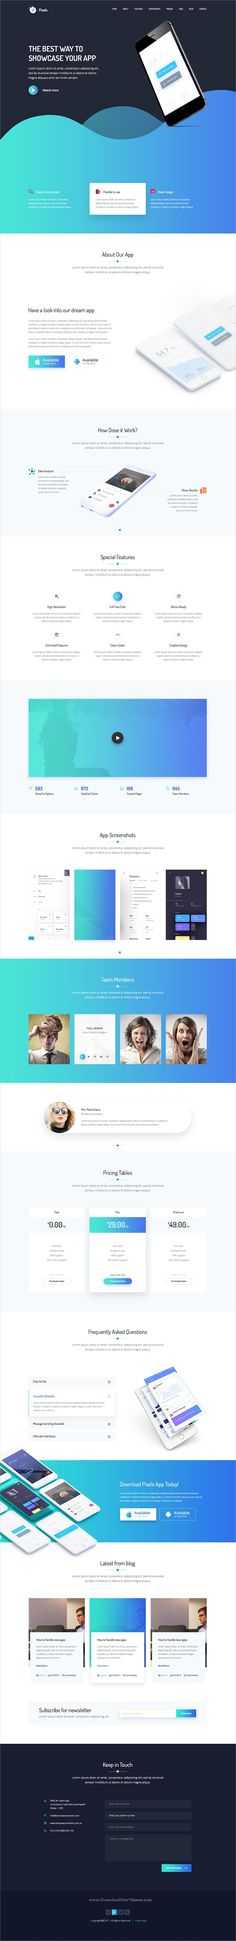 Pixels is clean and modern design #Photoshop template for creative #apps landing page website with 10 homepage layouts and 17 layered PSD pages download now..